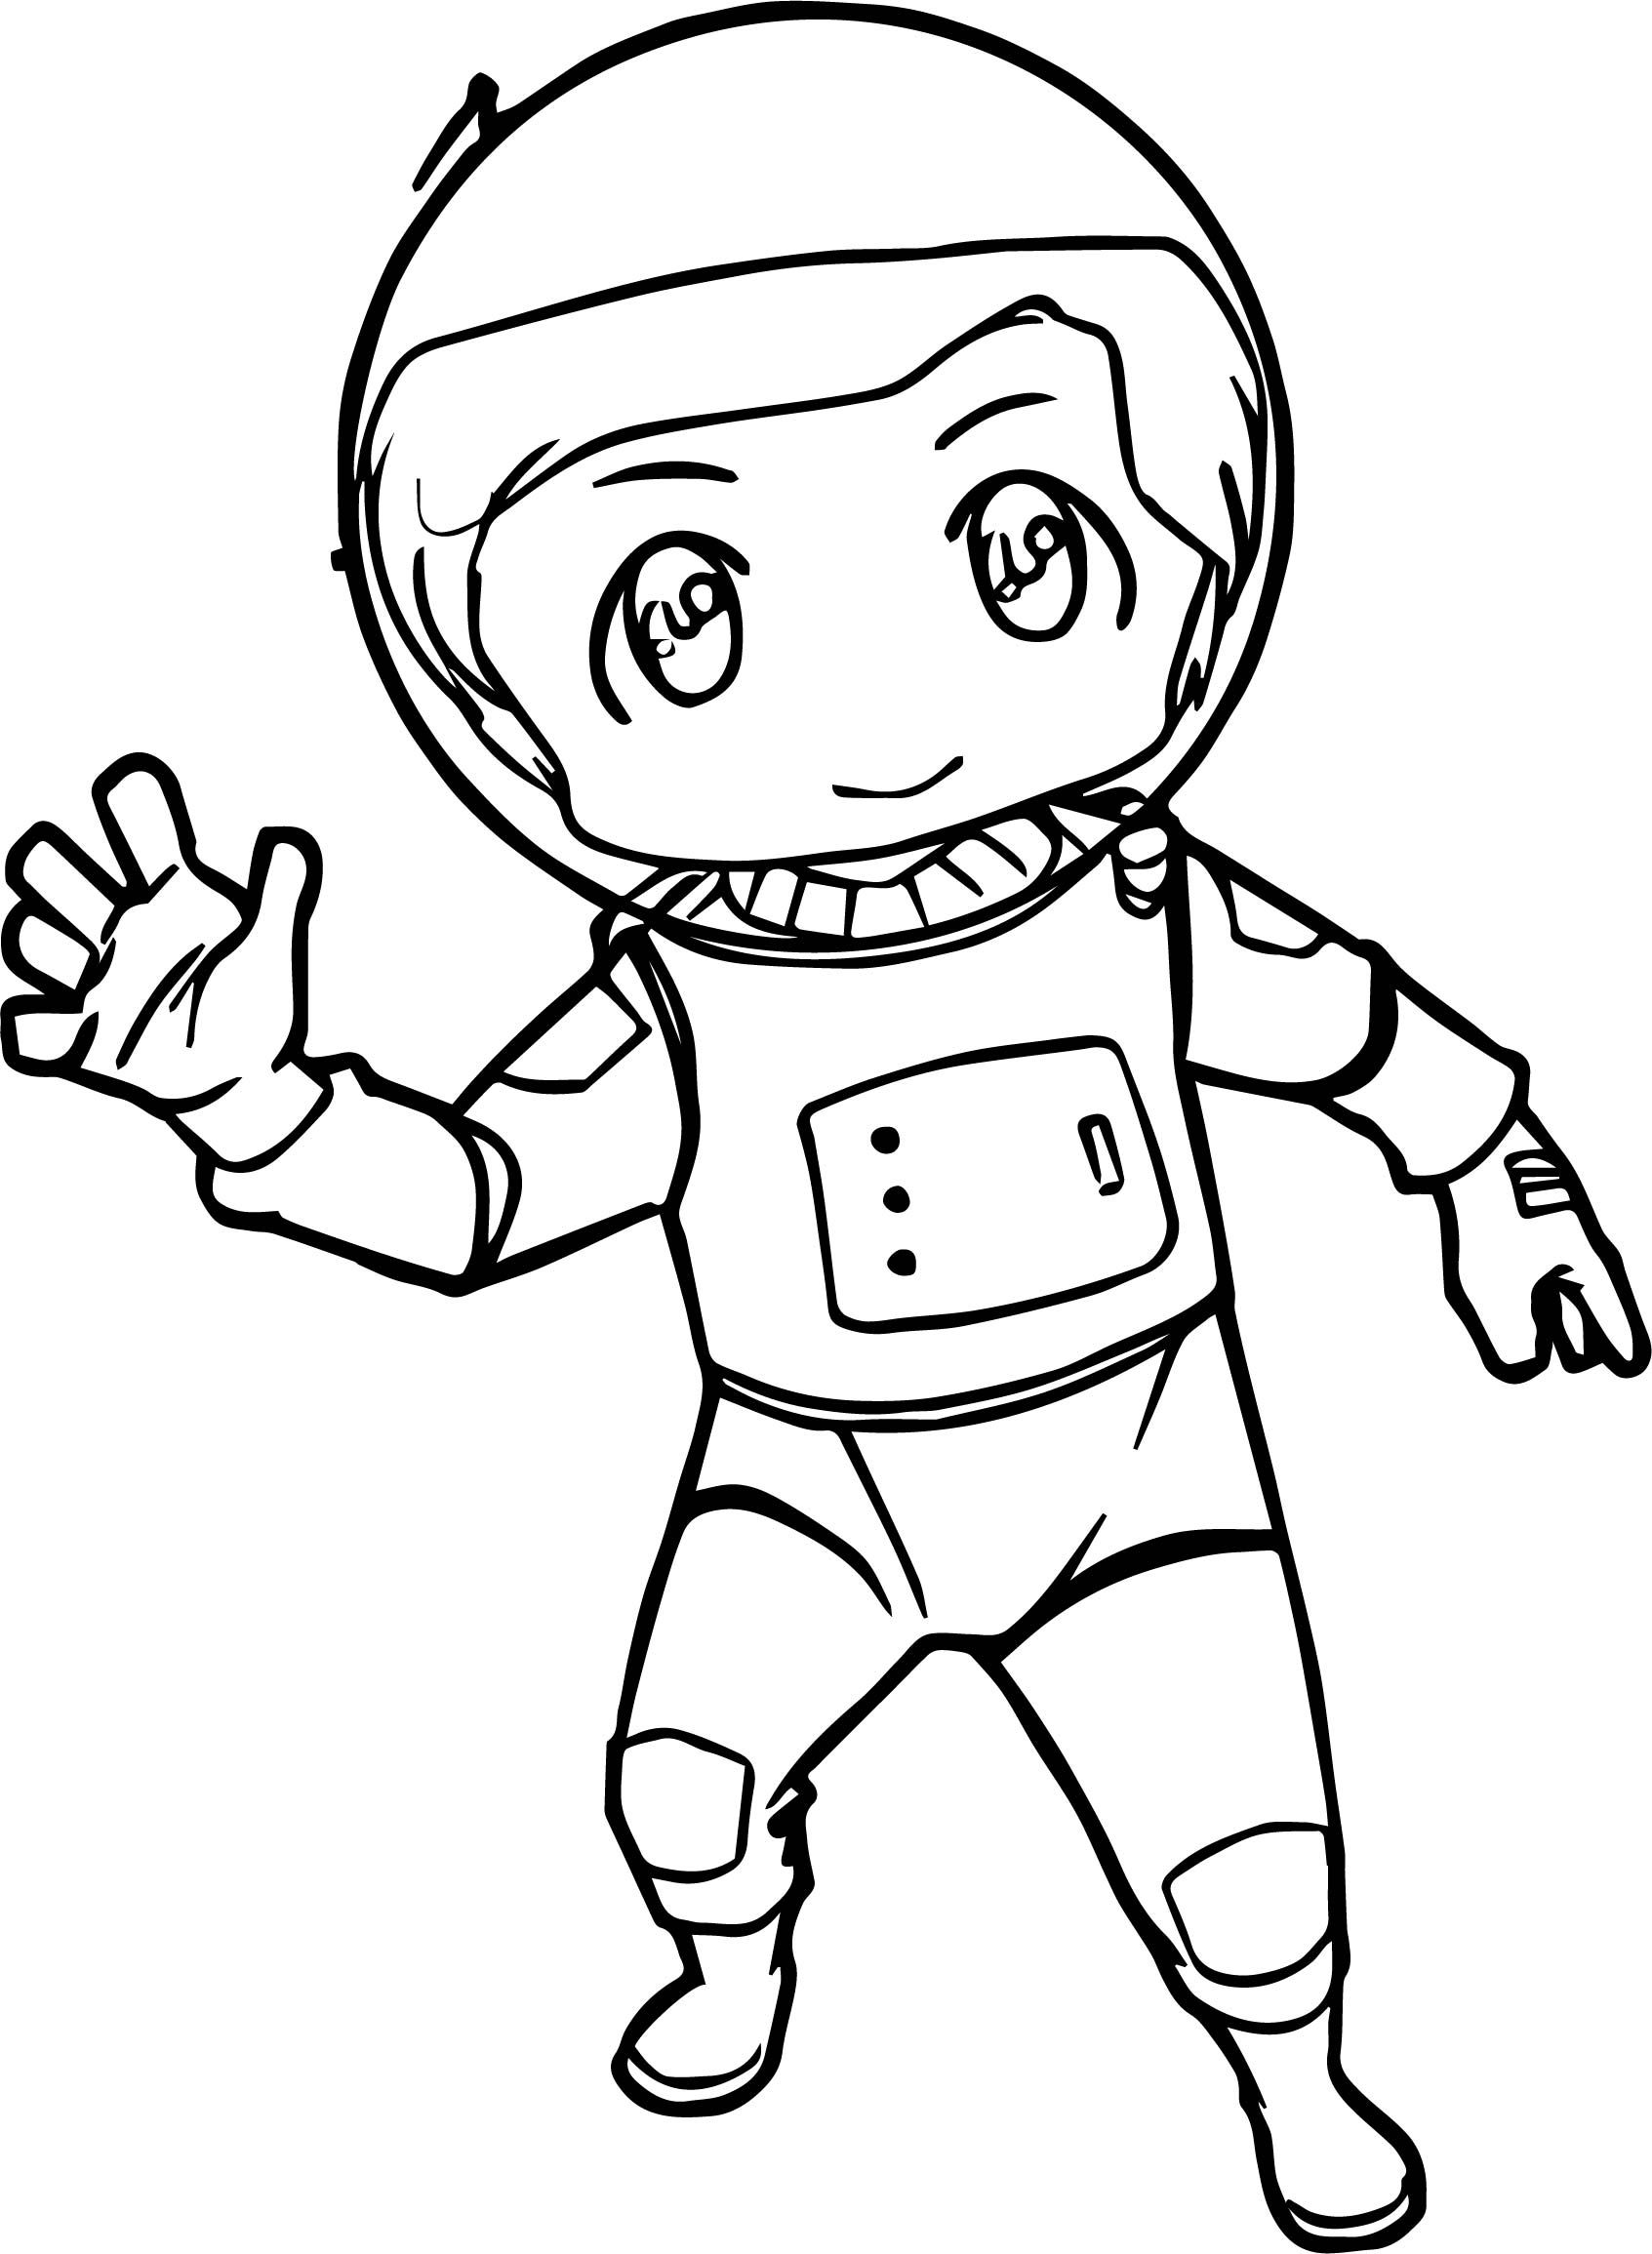 Chibi Kid Astronaut We Coloring Page